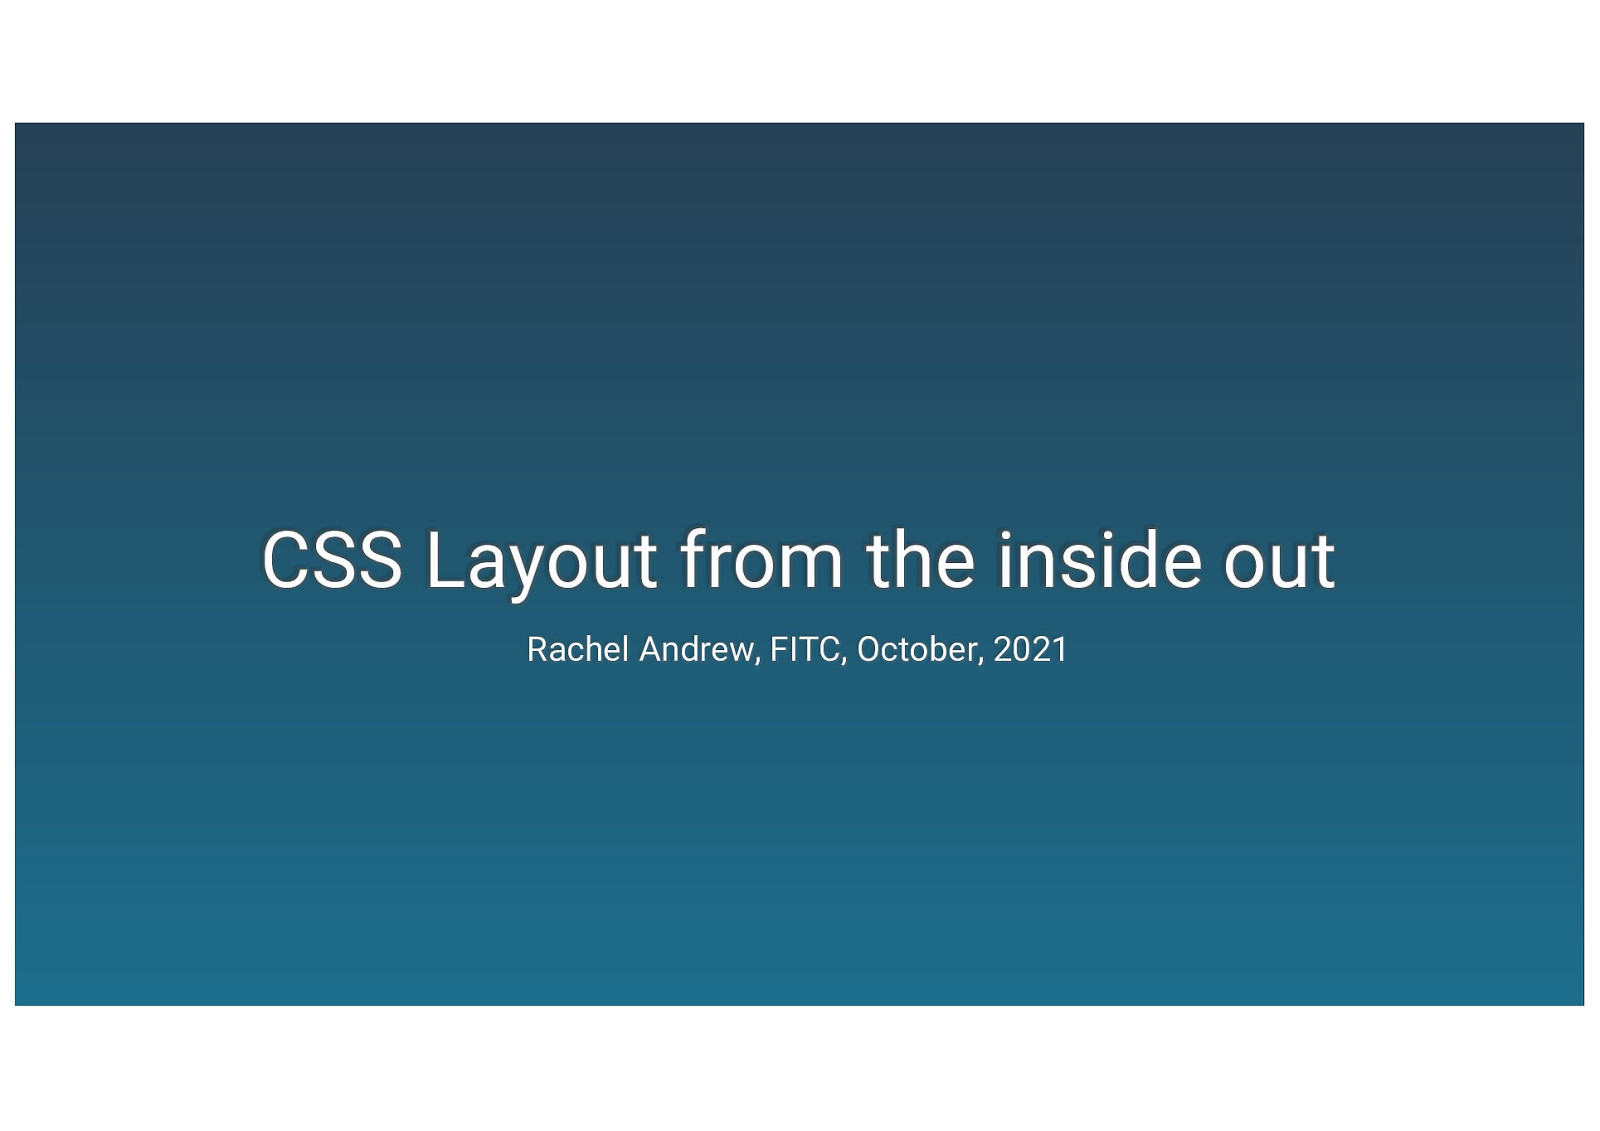 CSS layout from the inside out